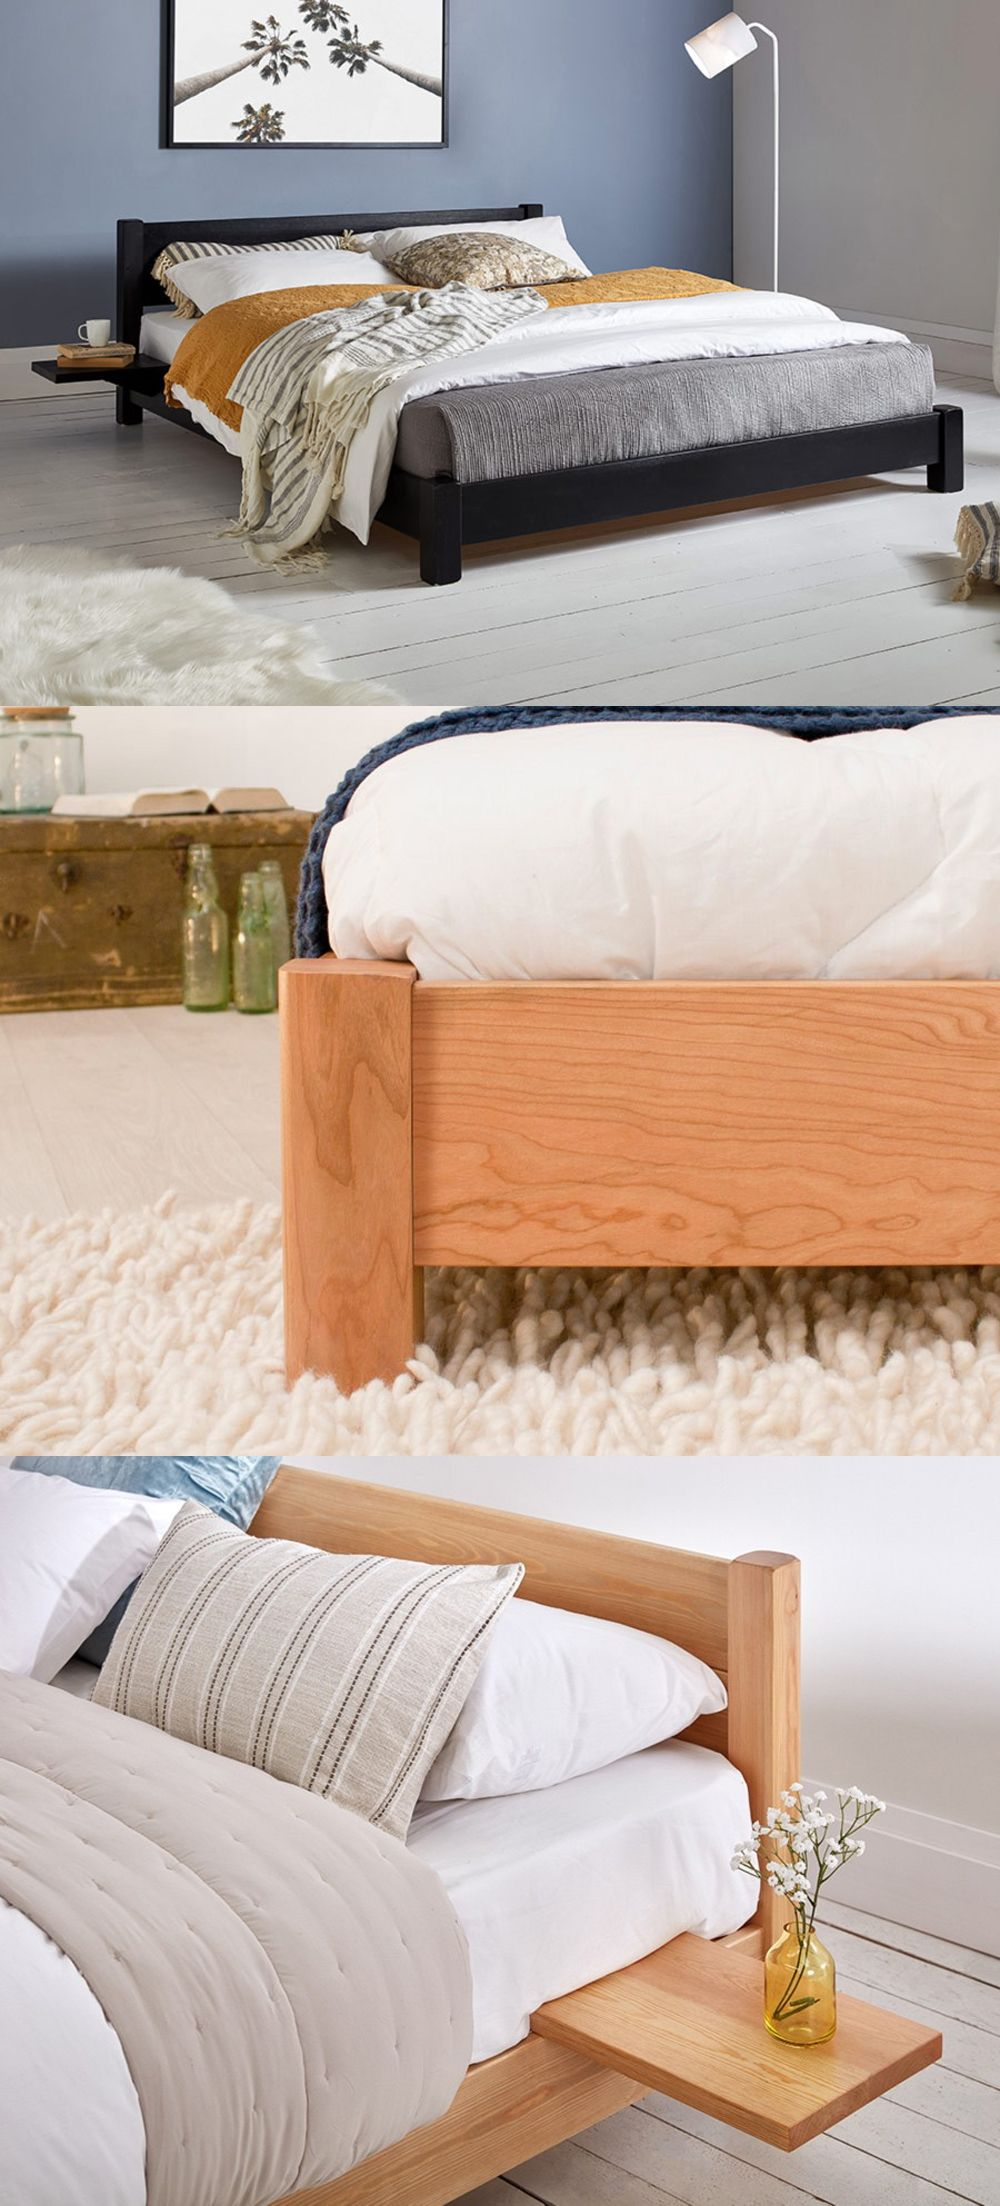 Our low beds, paired with a floating shelf or side table